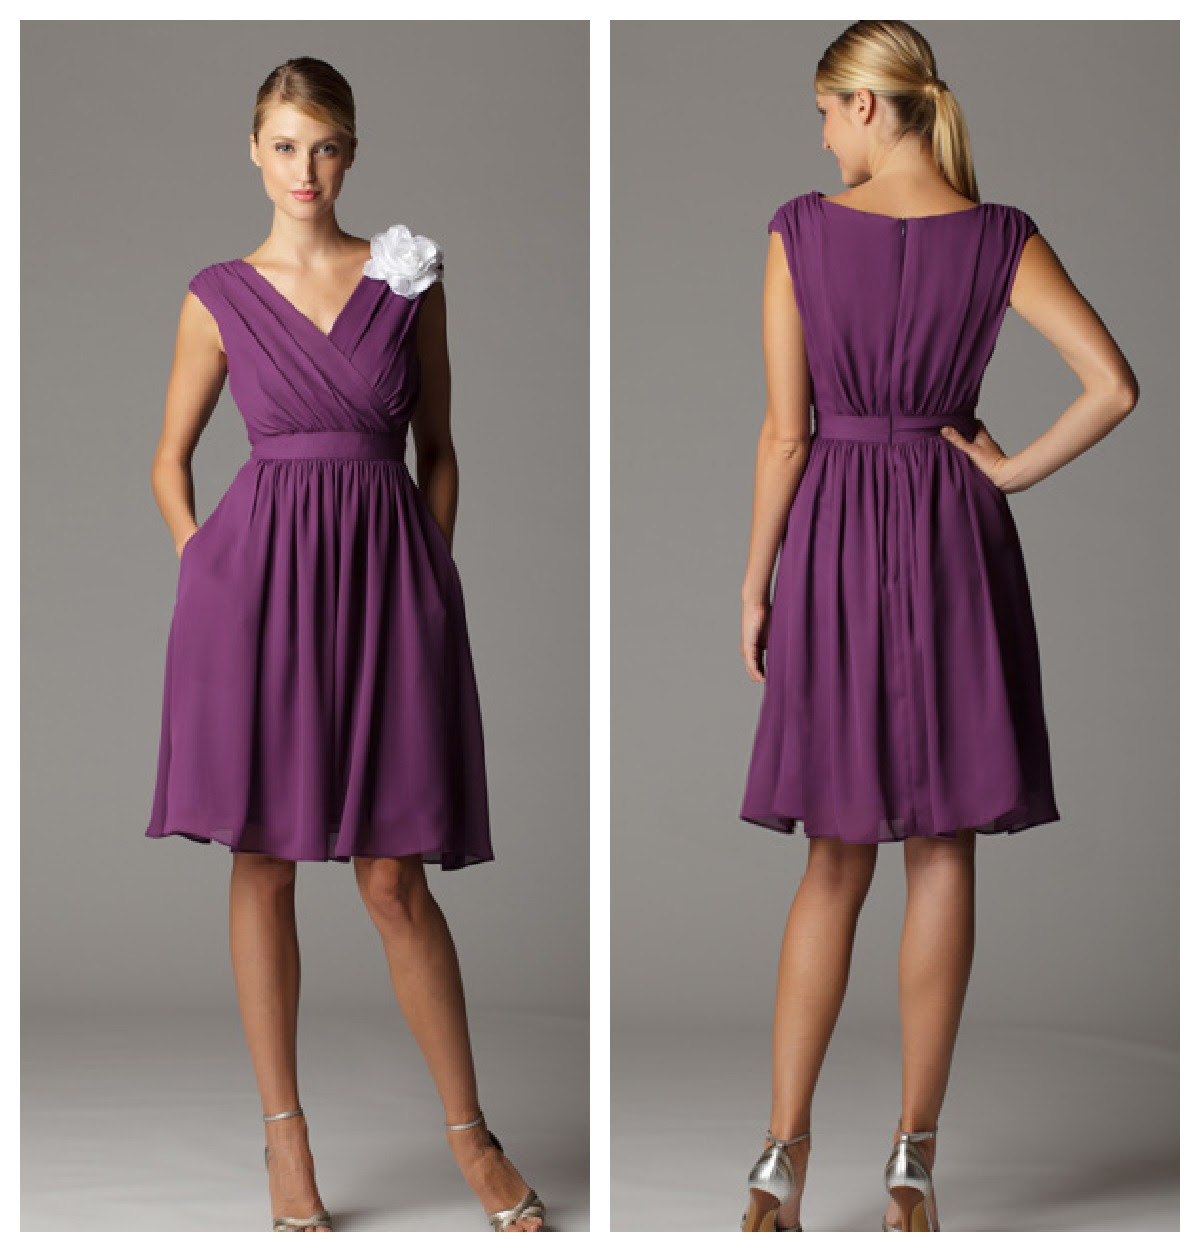 Download this Dresses You Love The... picture